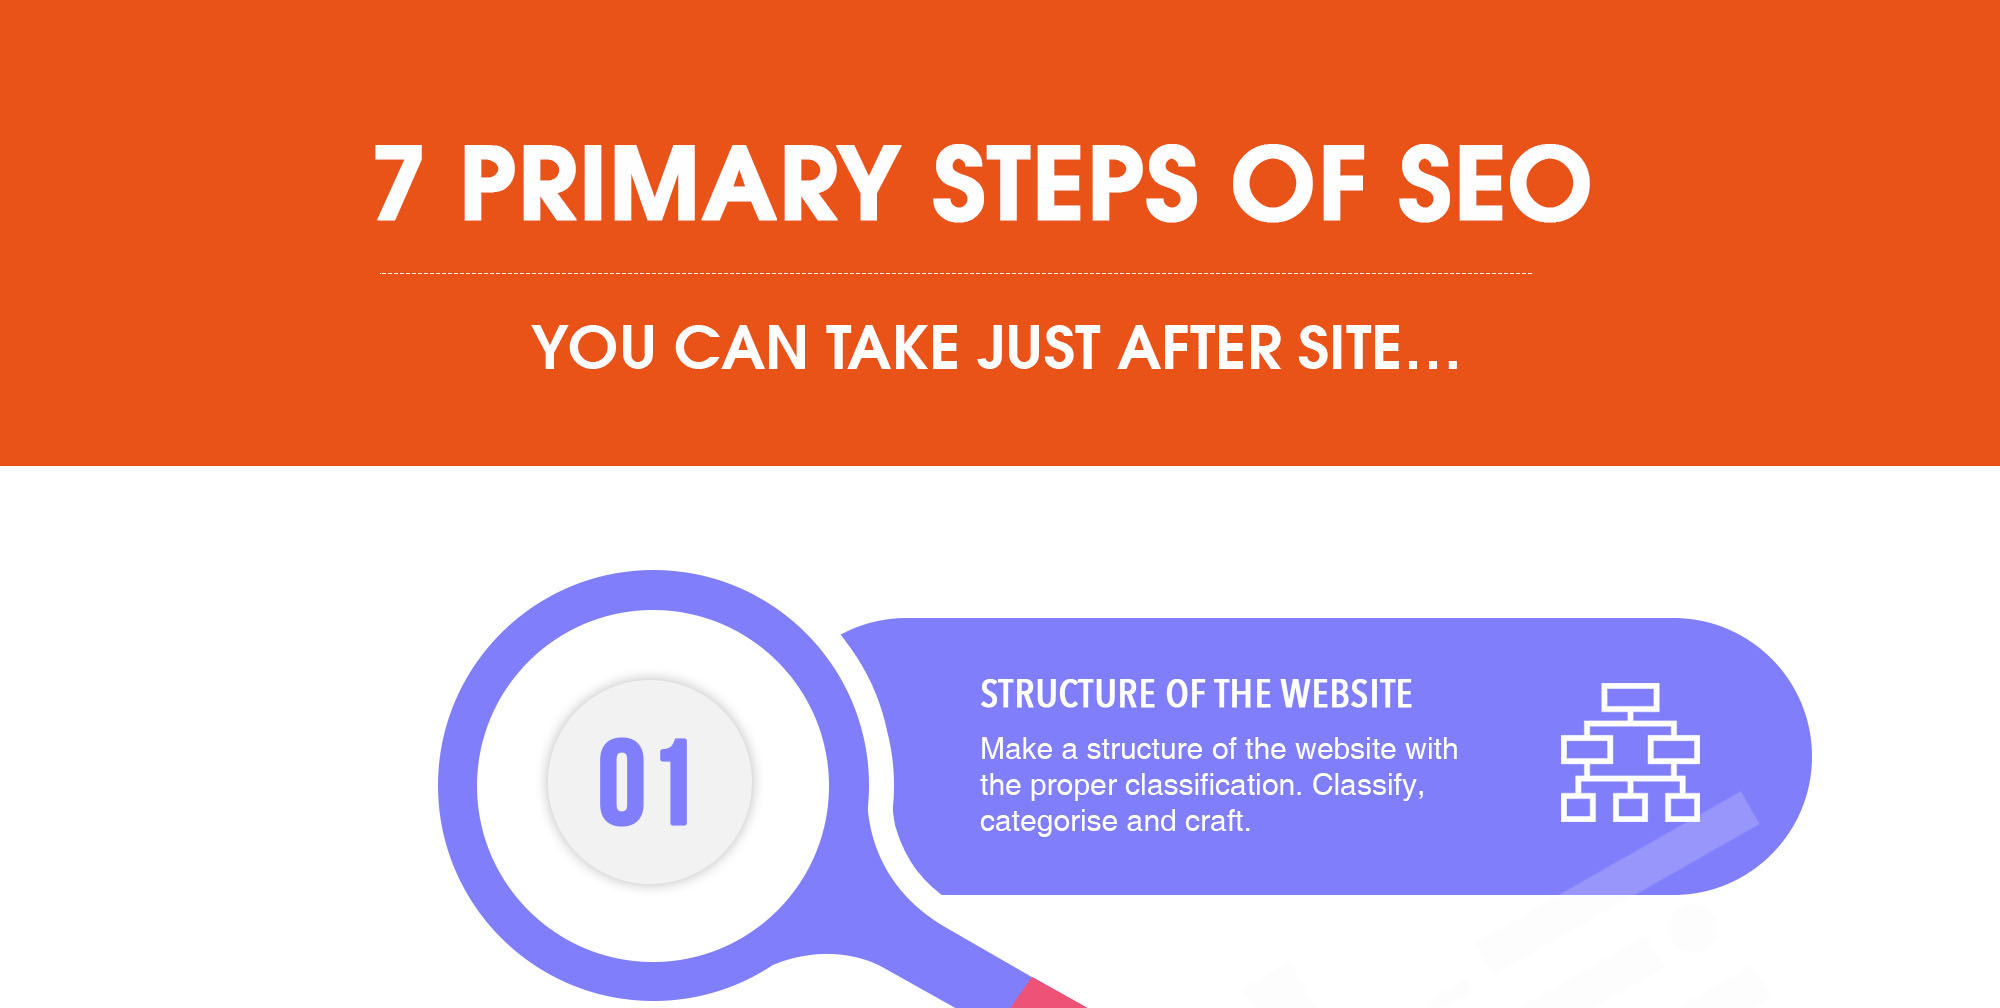 7 Primary Steps of SEO to Take After Just Launching Your Website